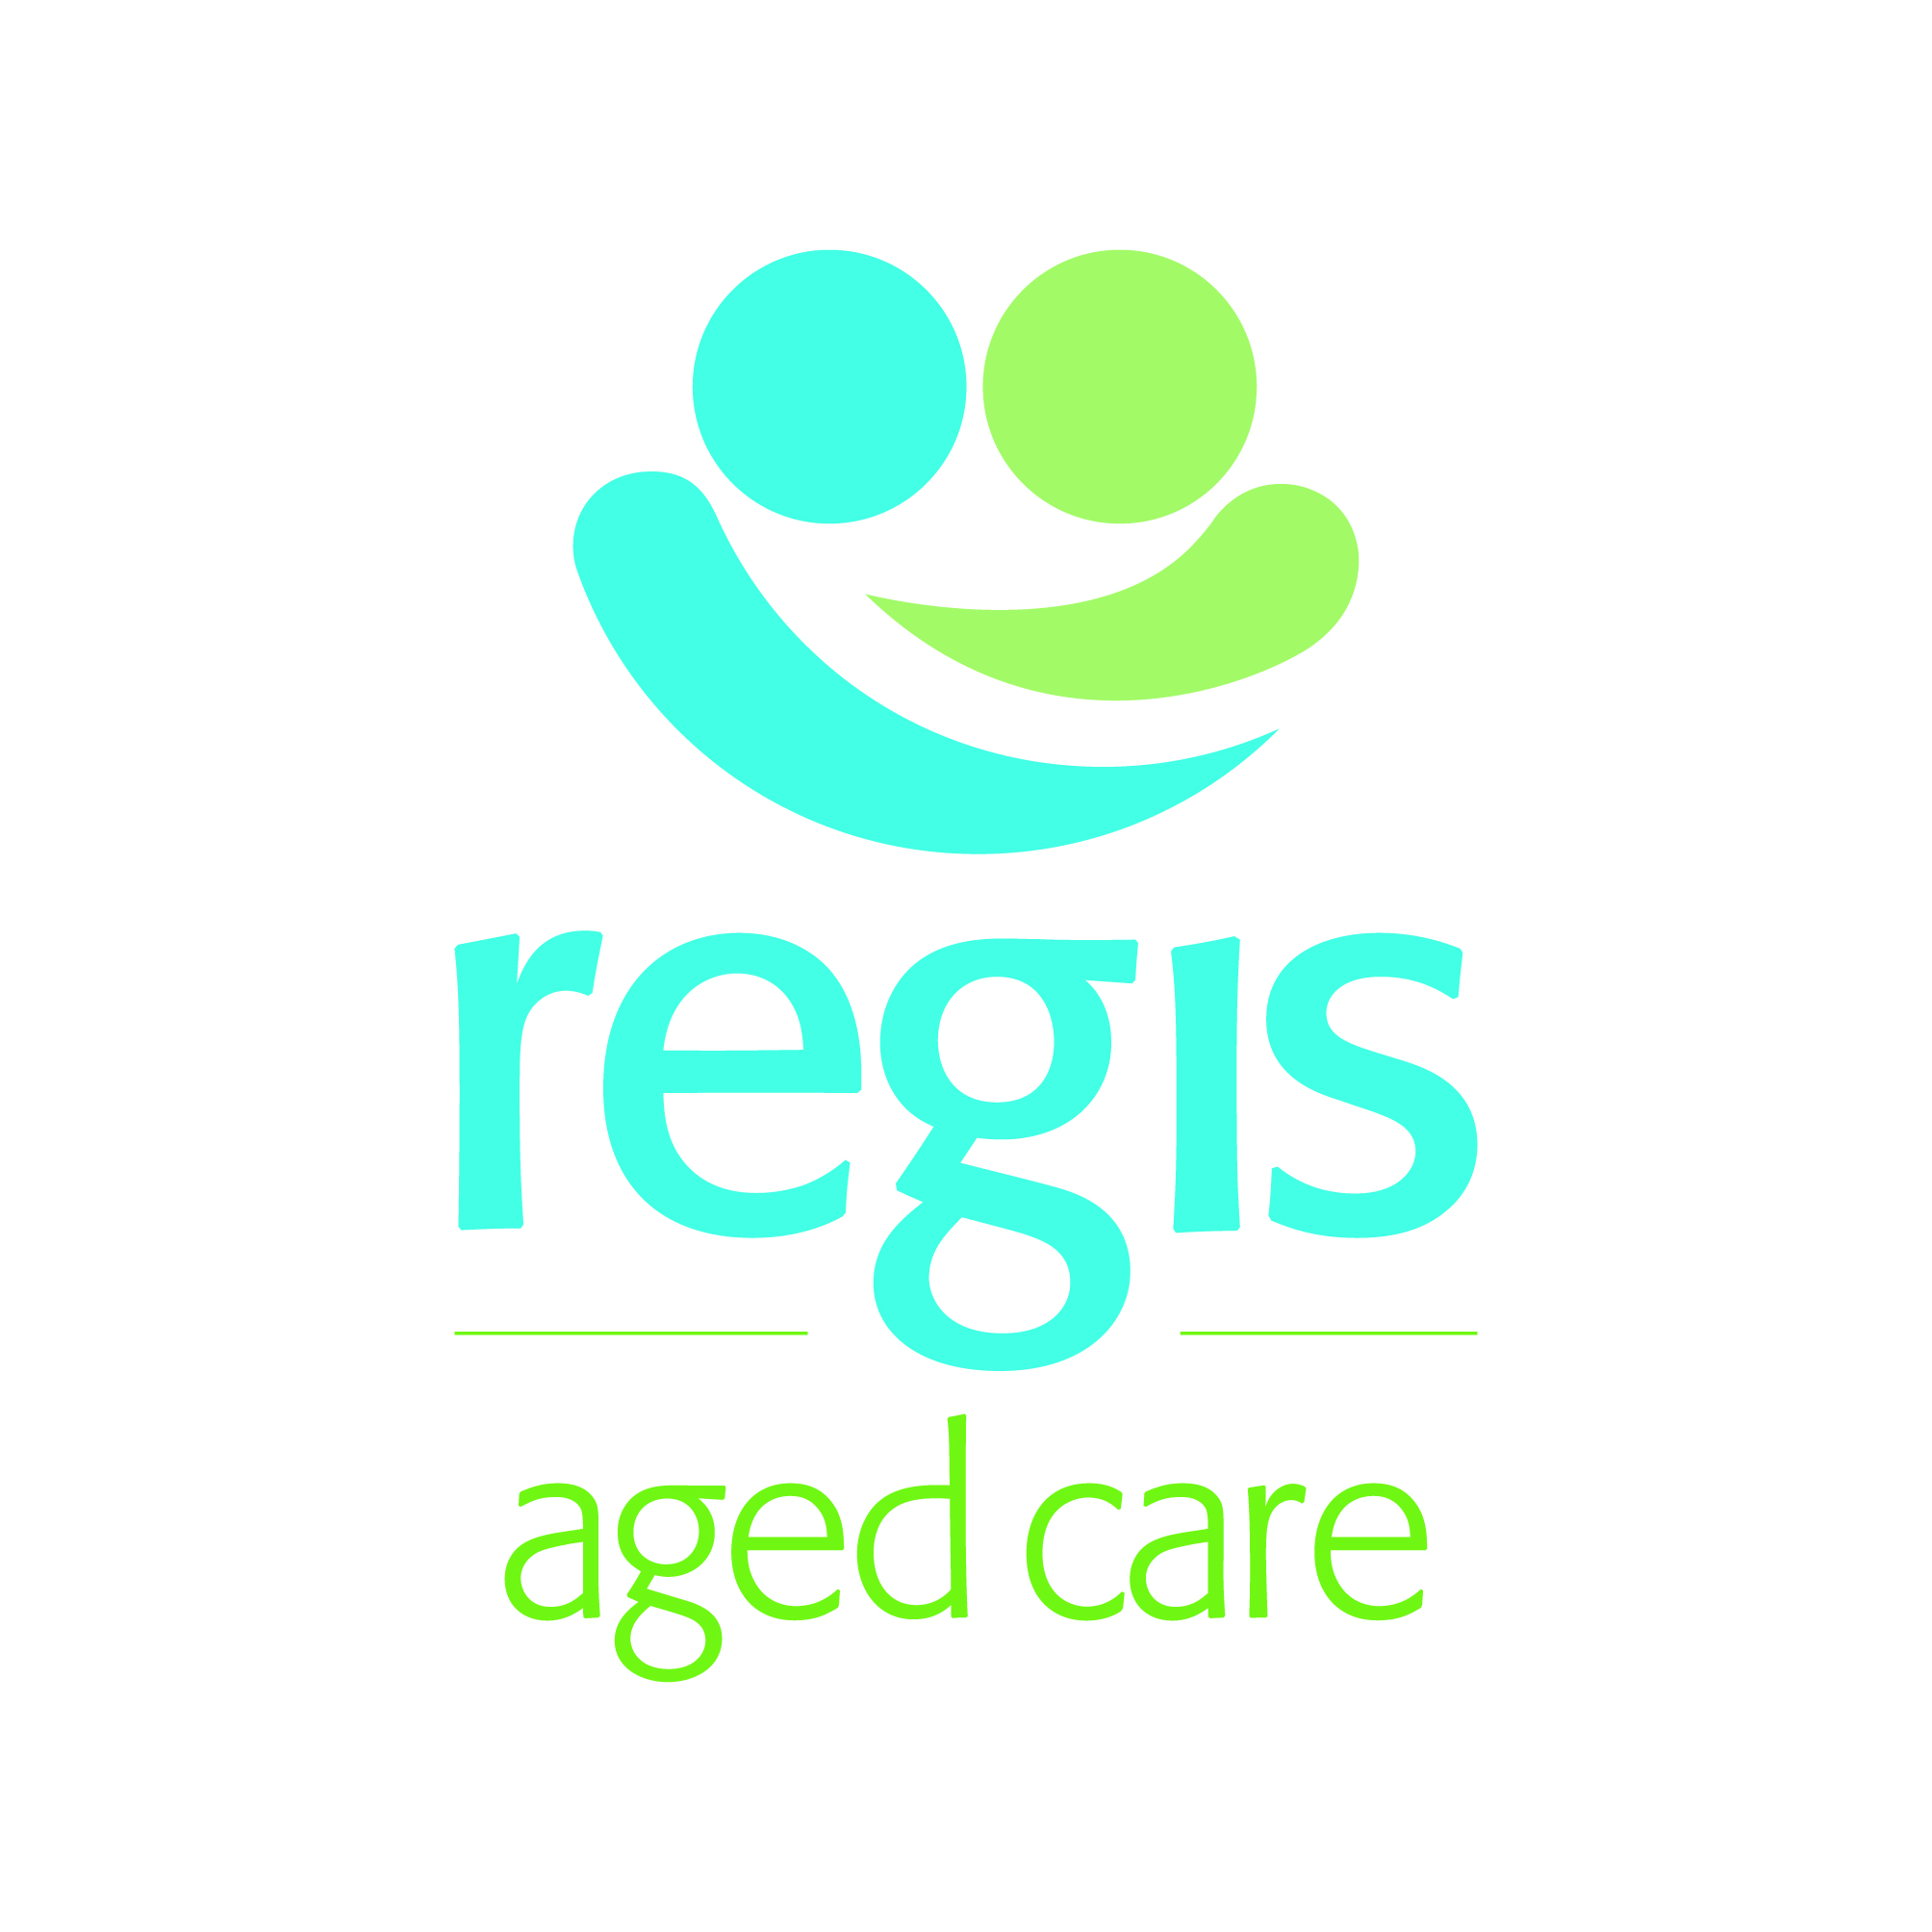 Regis logo 2015_aged care colour stacked